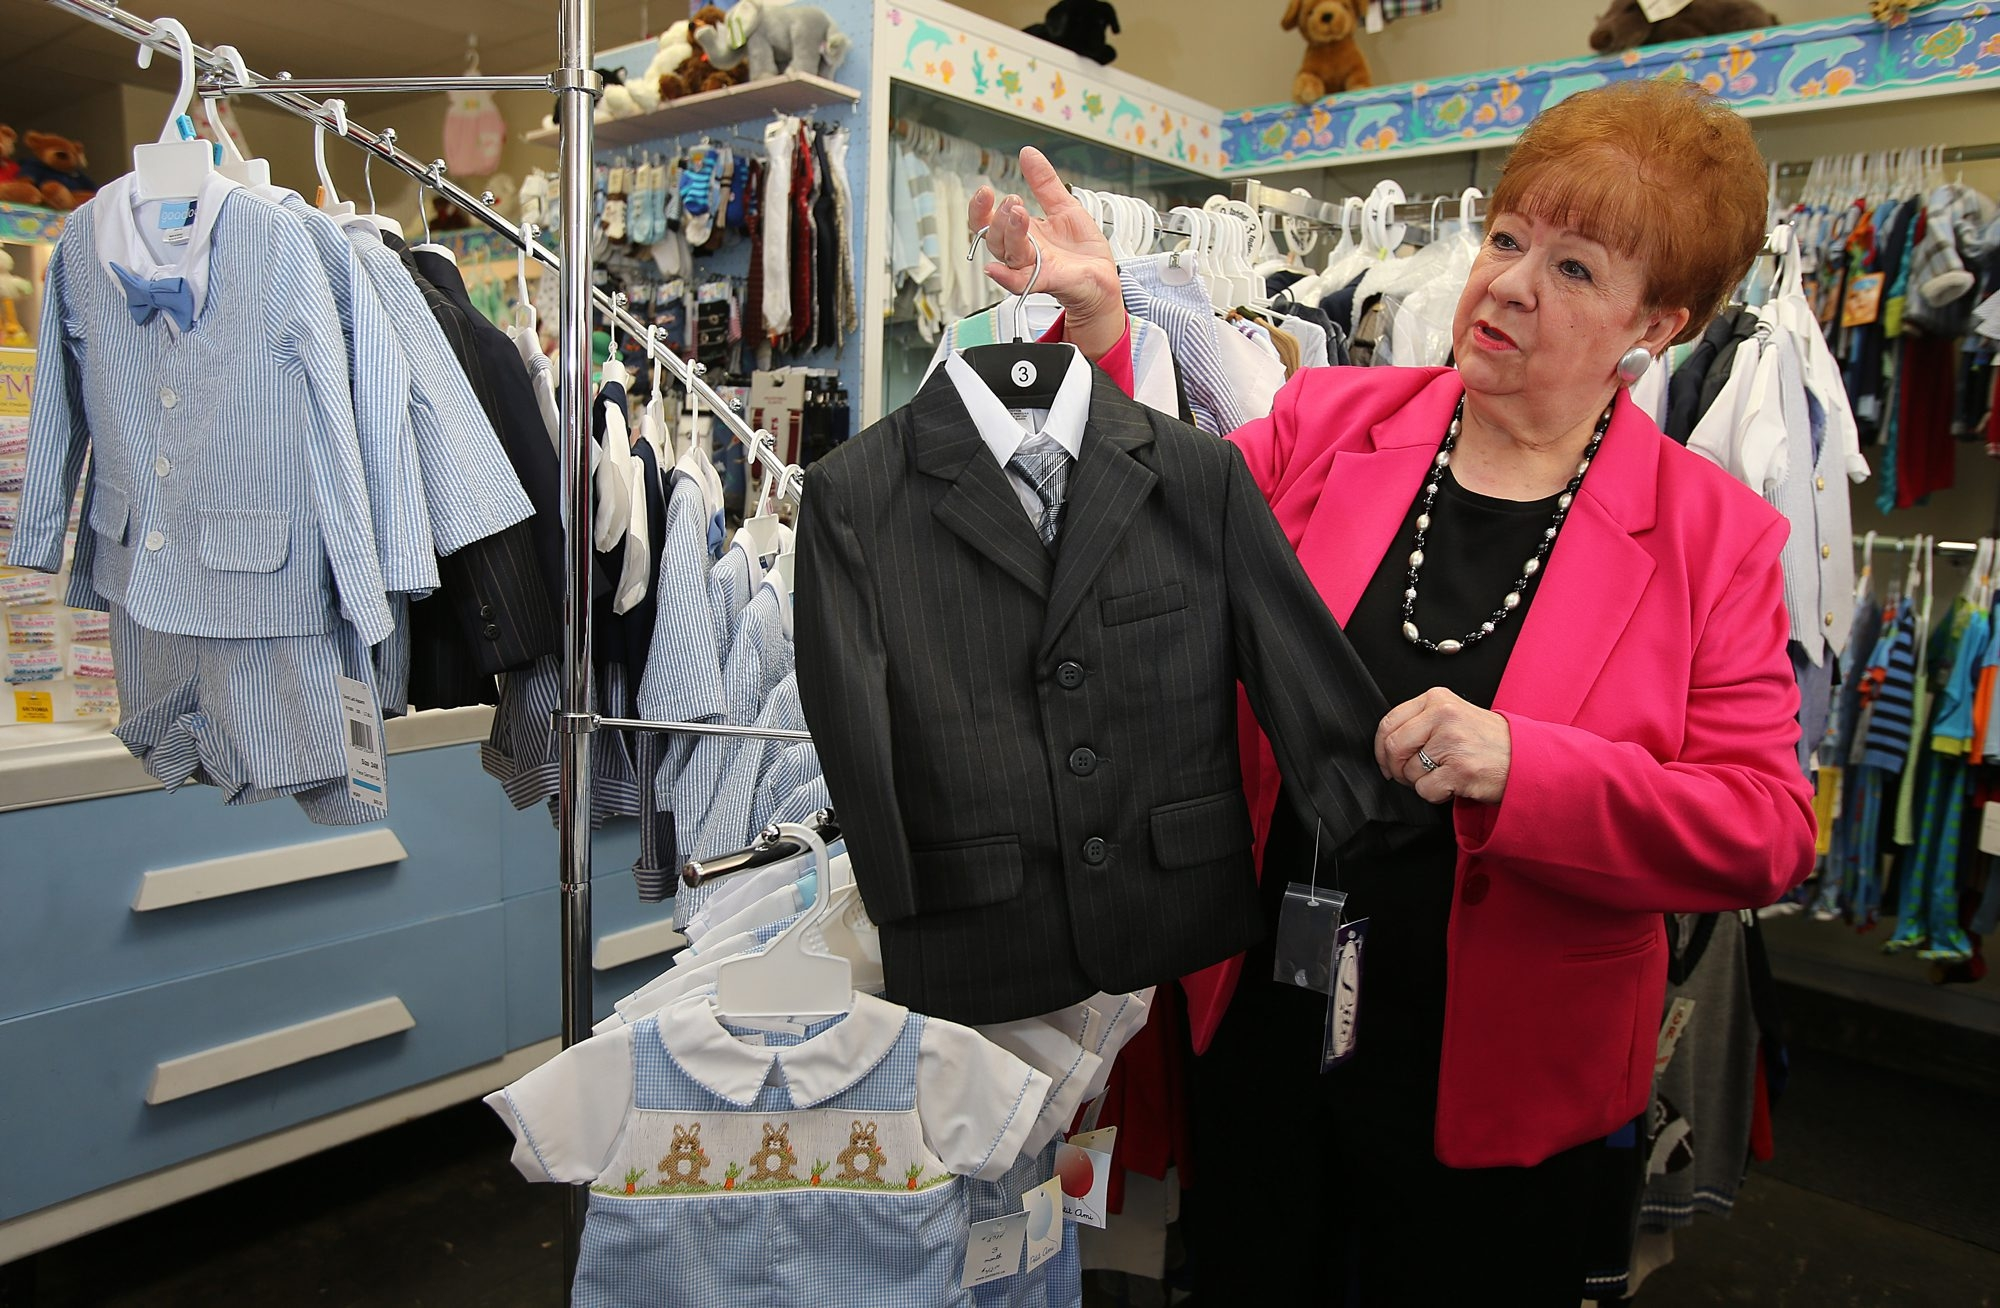 Joanne Shaghoian shows off  merchandise in her Village of Lewiston store, Sister and Brother Children's Apparel.